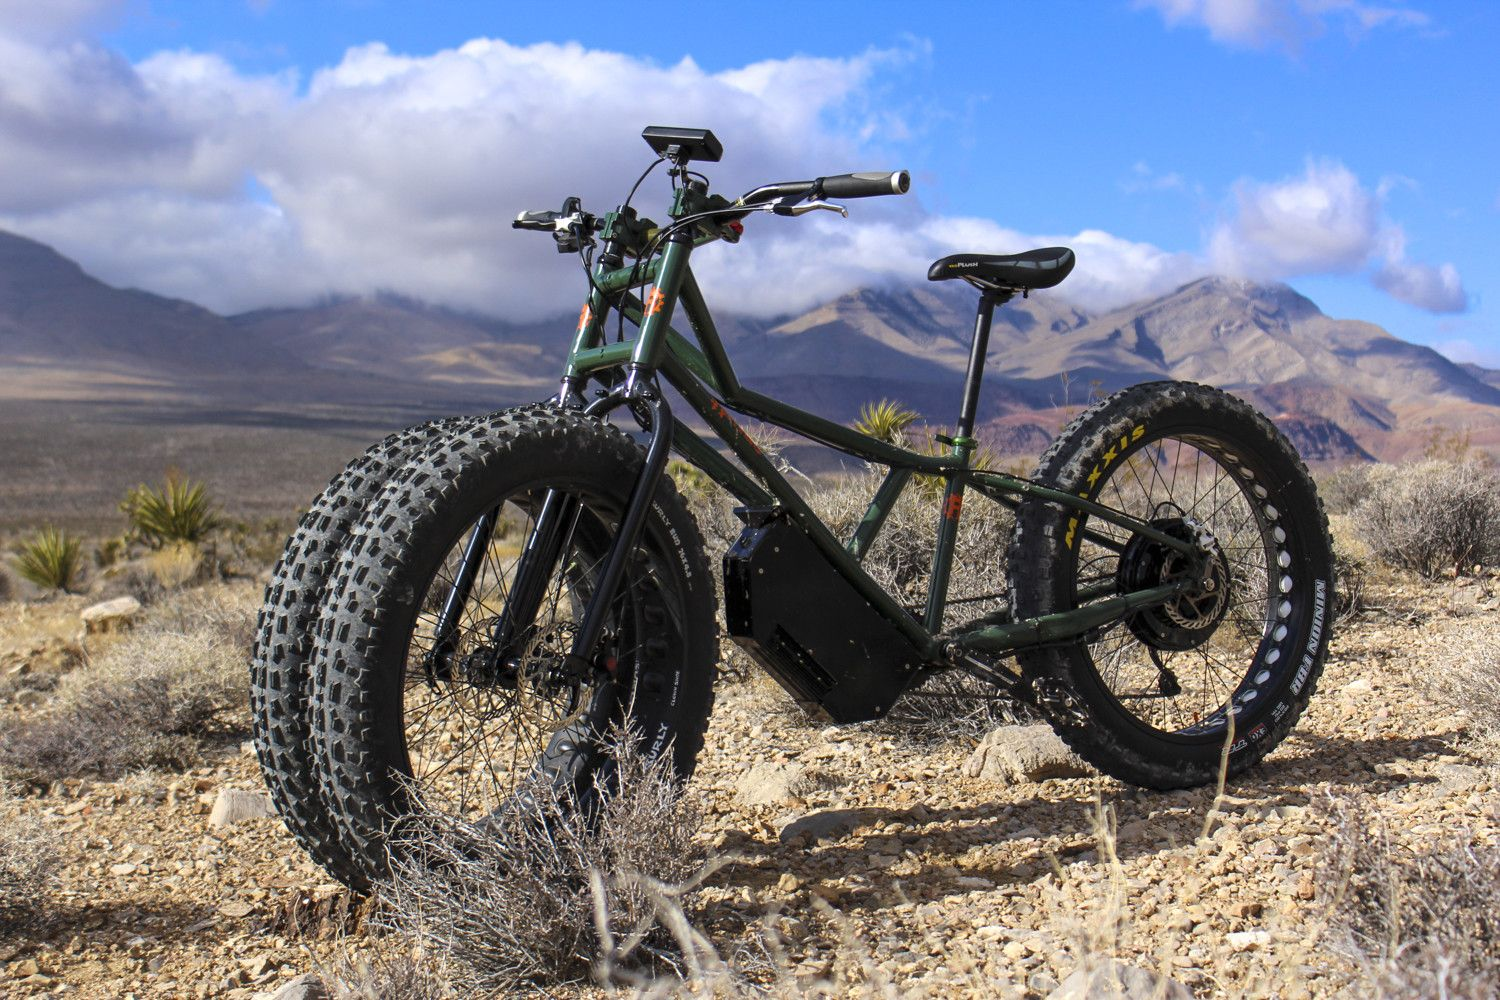 Rungu Juggernaut Our First Taketackle Any Trail With This Beastly 3 Wheeled Electric Mountain Bike Electric Mountain Bike Mountain Biking Digital Trends